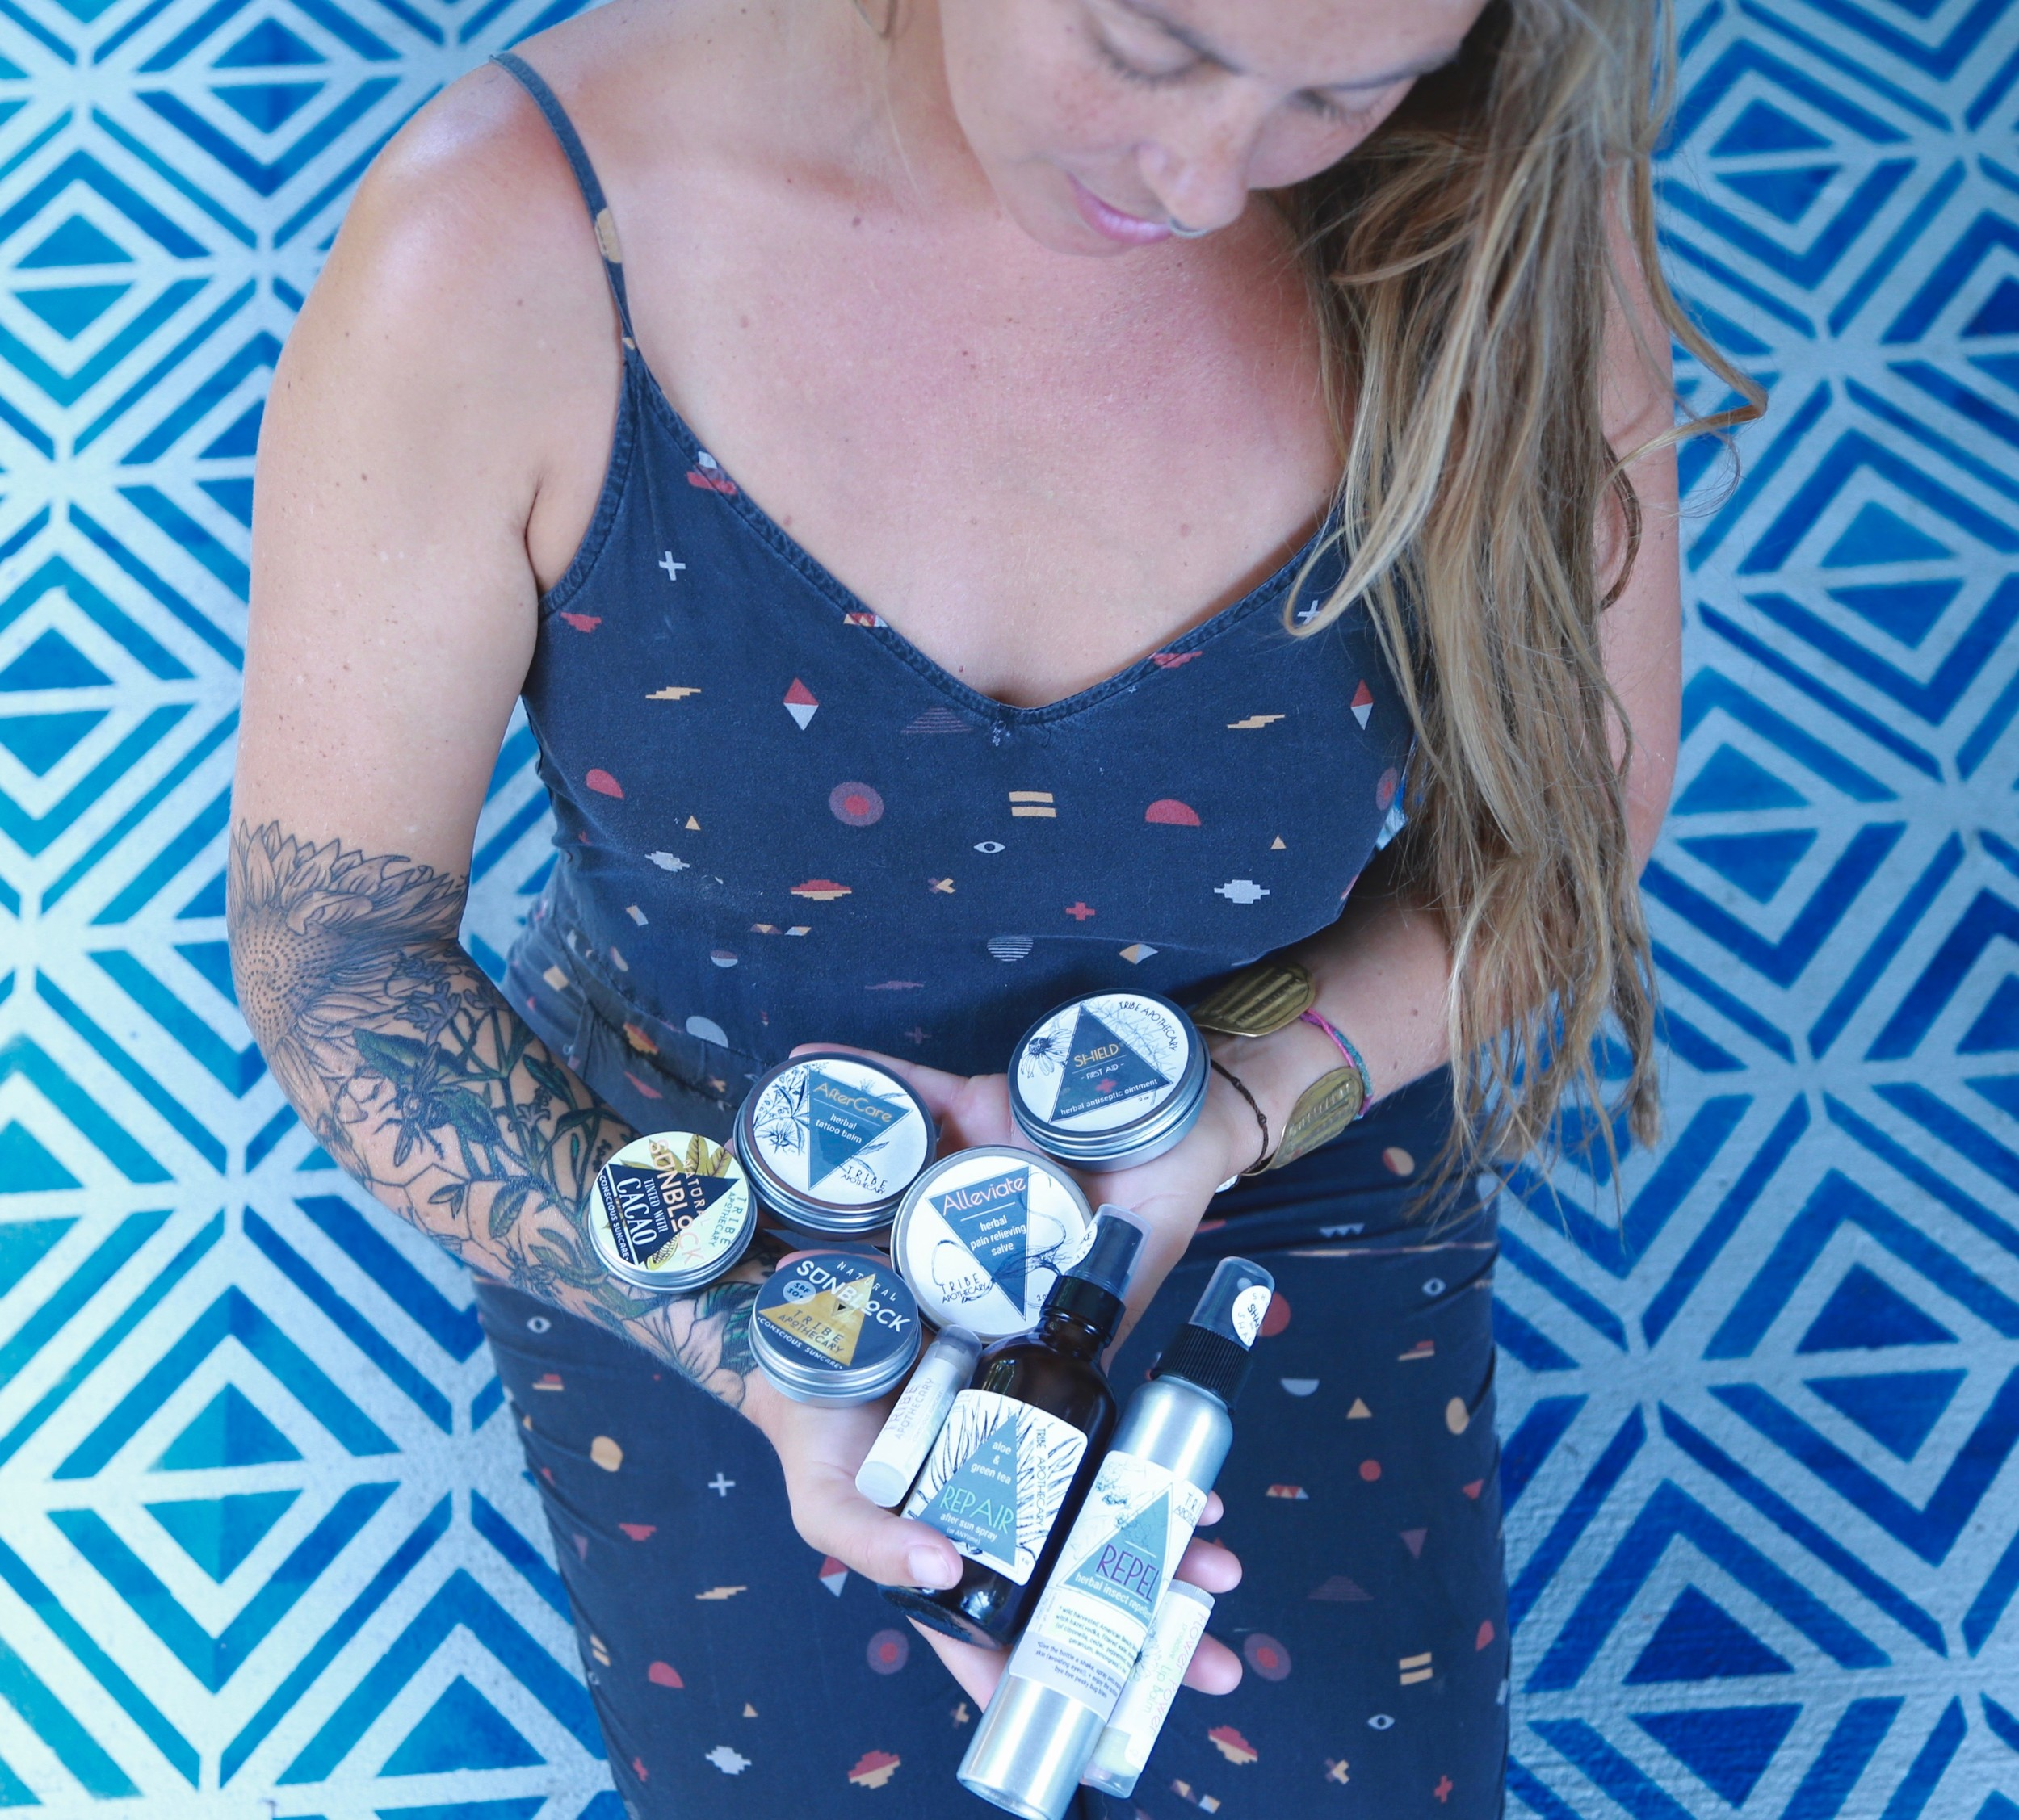 Tribe Apothecary owner Lauren Estes displays the various sunscreen and skin care products that her business sells.